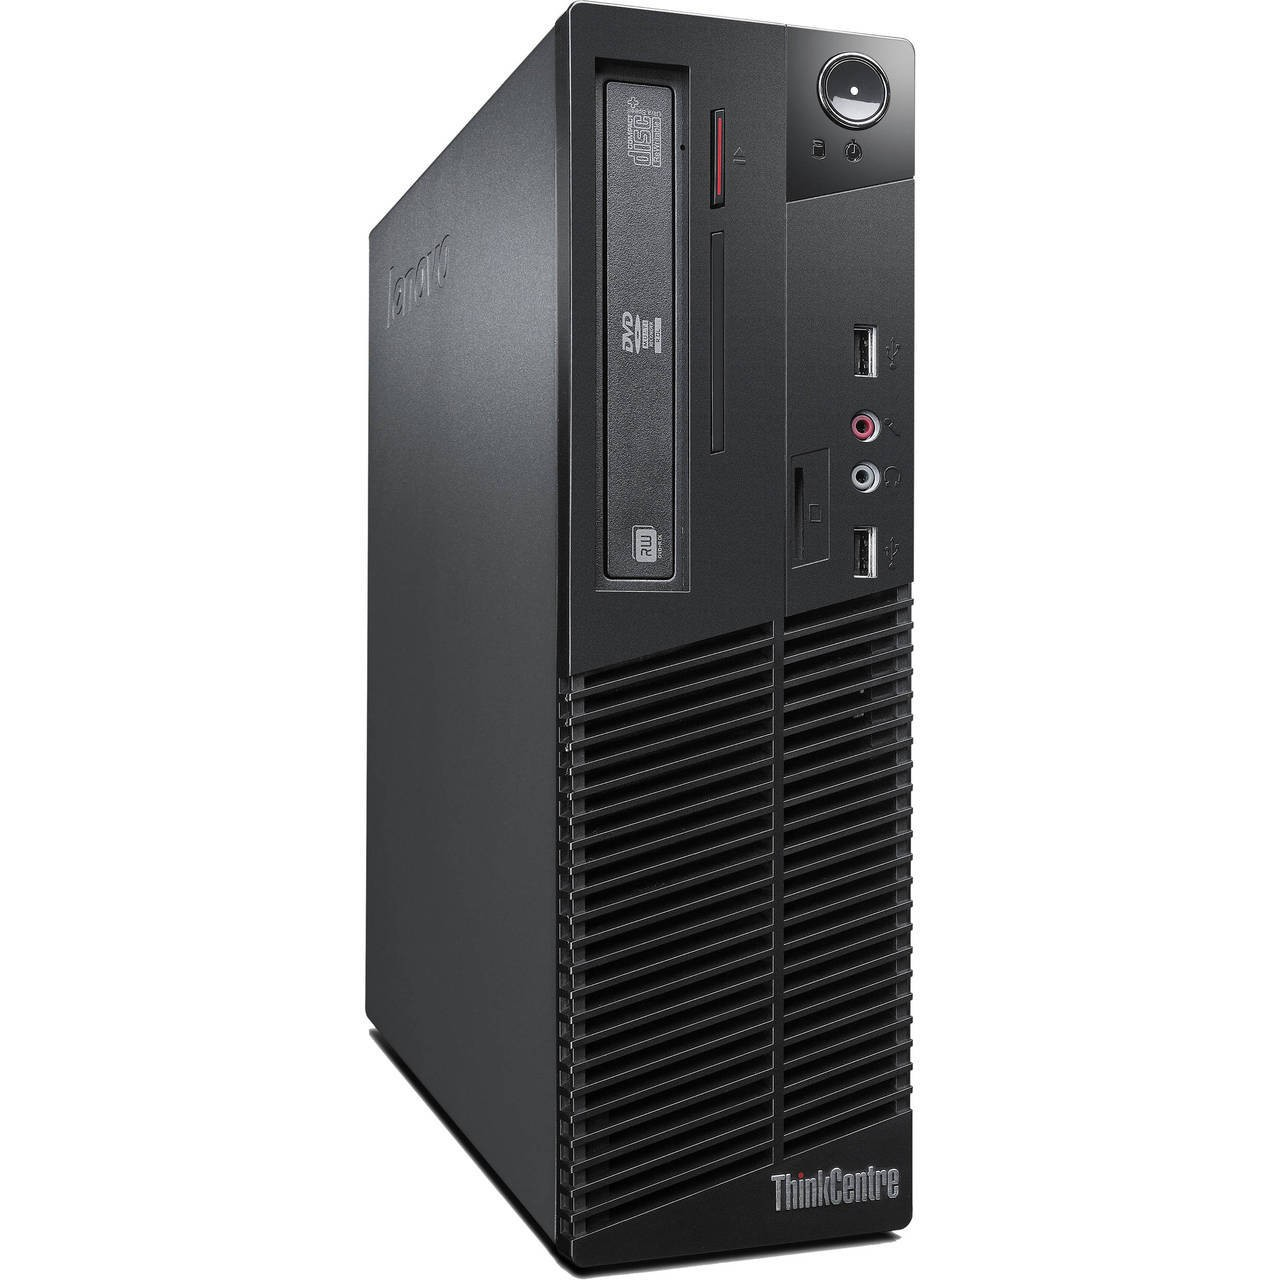 LEN-TC-M72e-SFF-i5-Refurbished Lenovo ThinkCentre M72e Desktop 500 GB HDD 8 GB RAM Intel Core i5 Small Form Factor Win 10 Pro-image